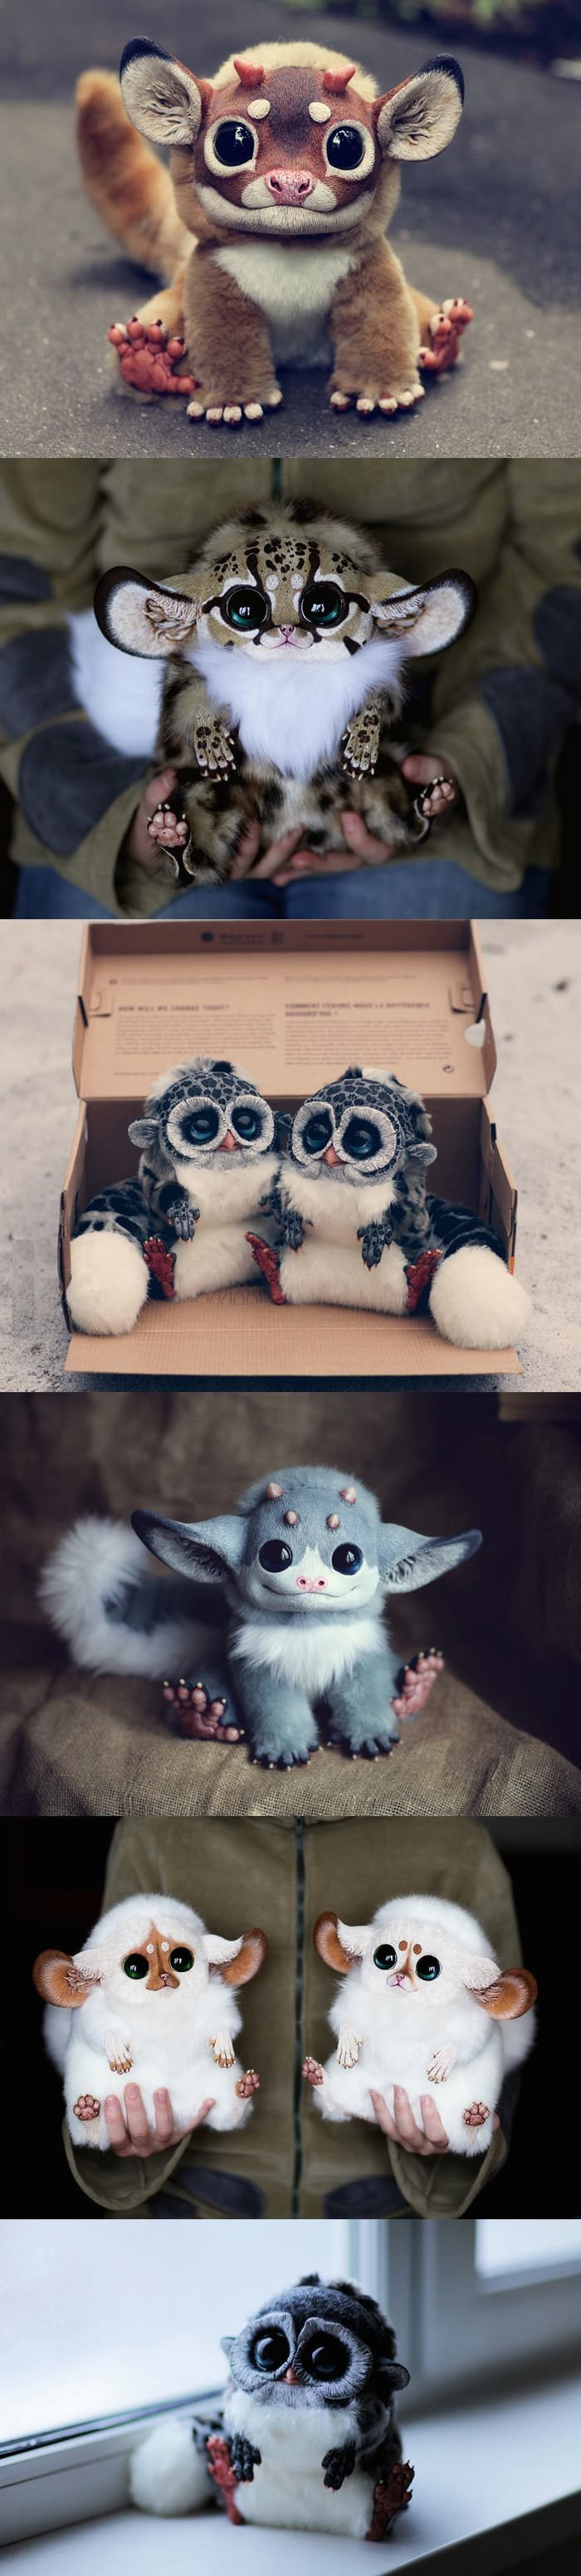 THESE ARE SO CUTE